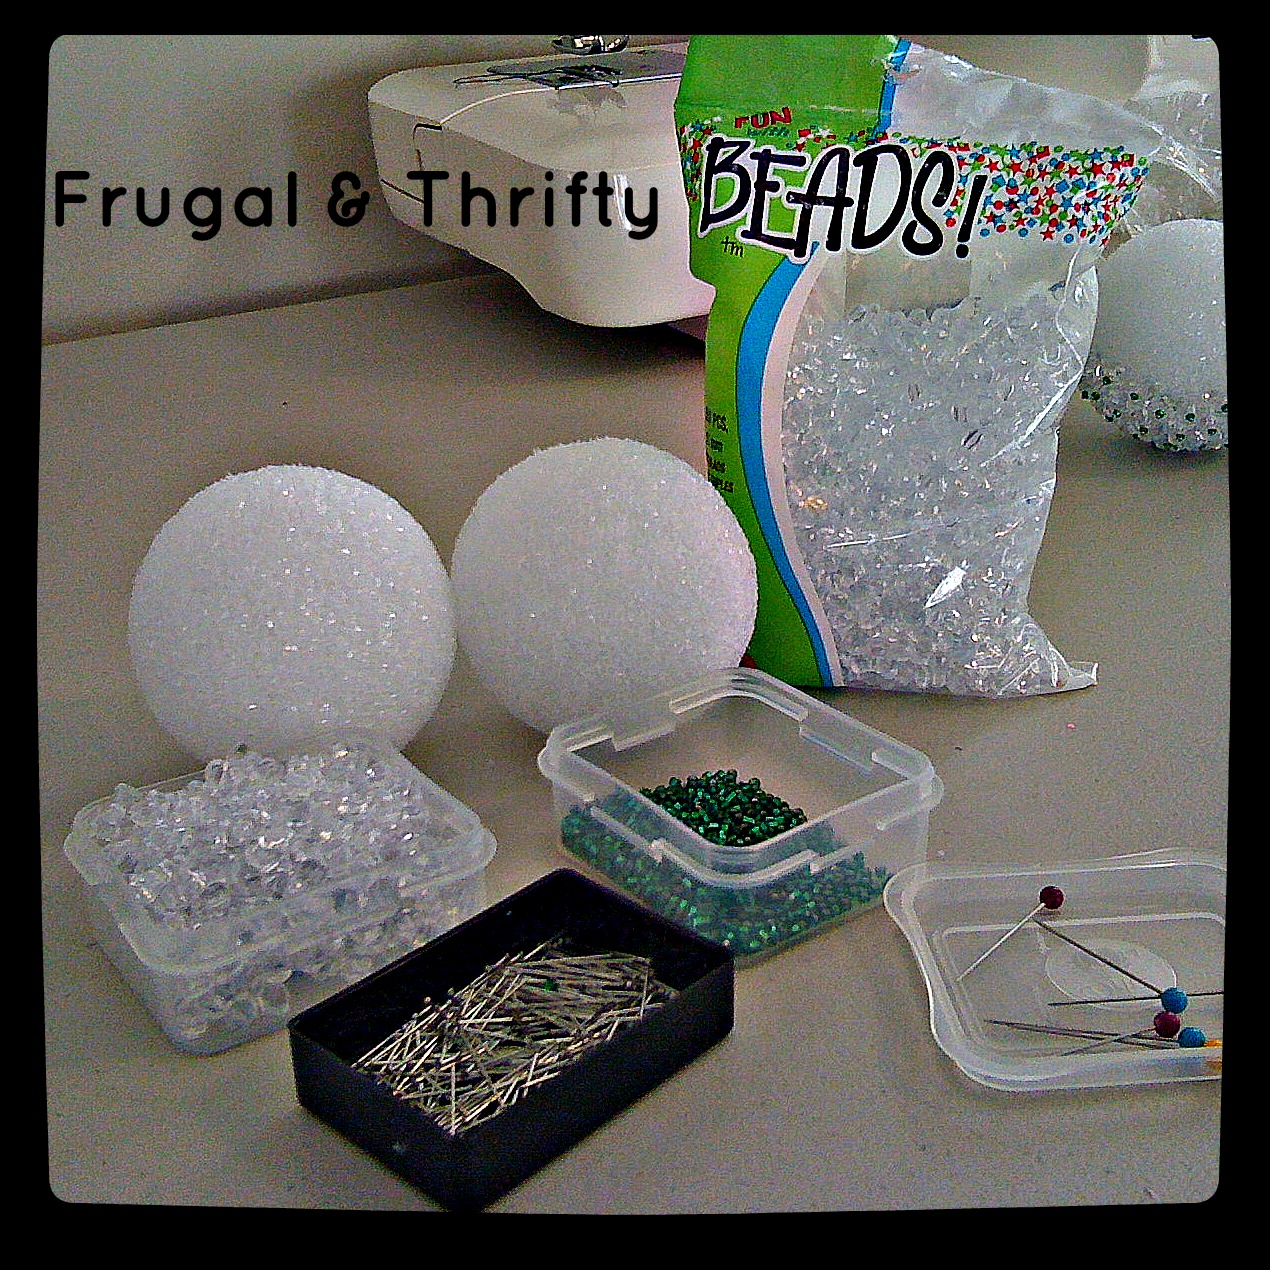 Frugal & Thrifty : Do It Yourself